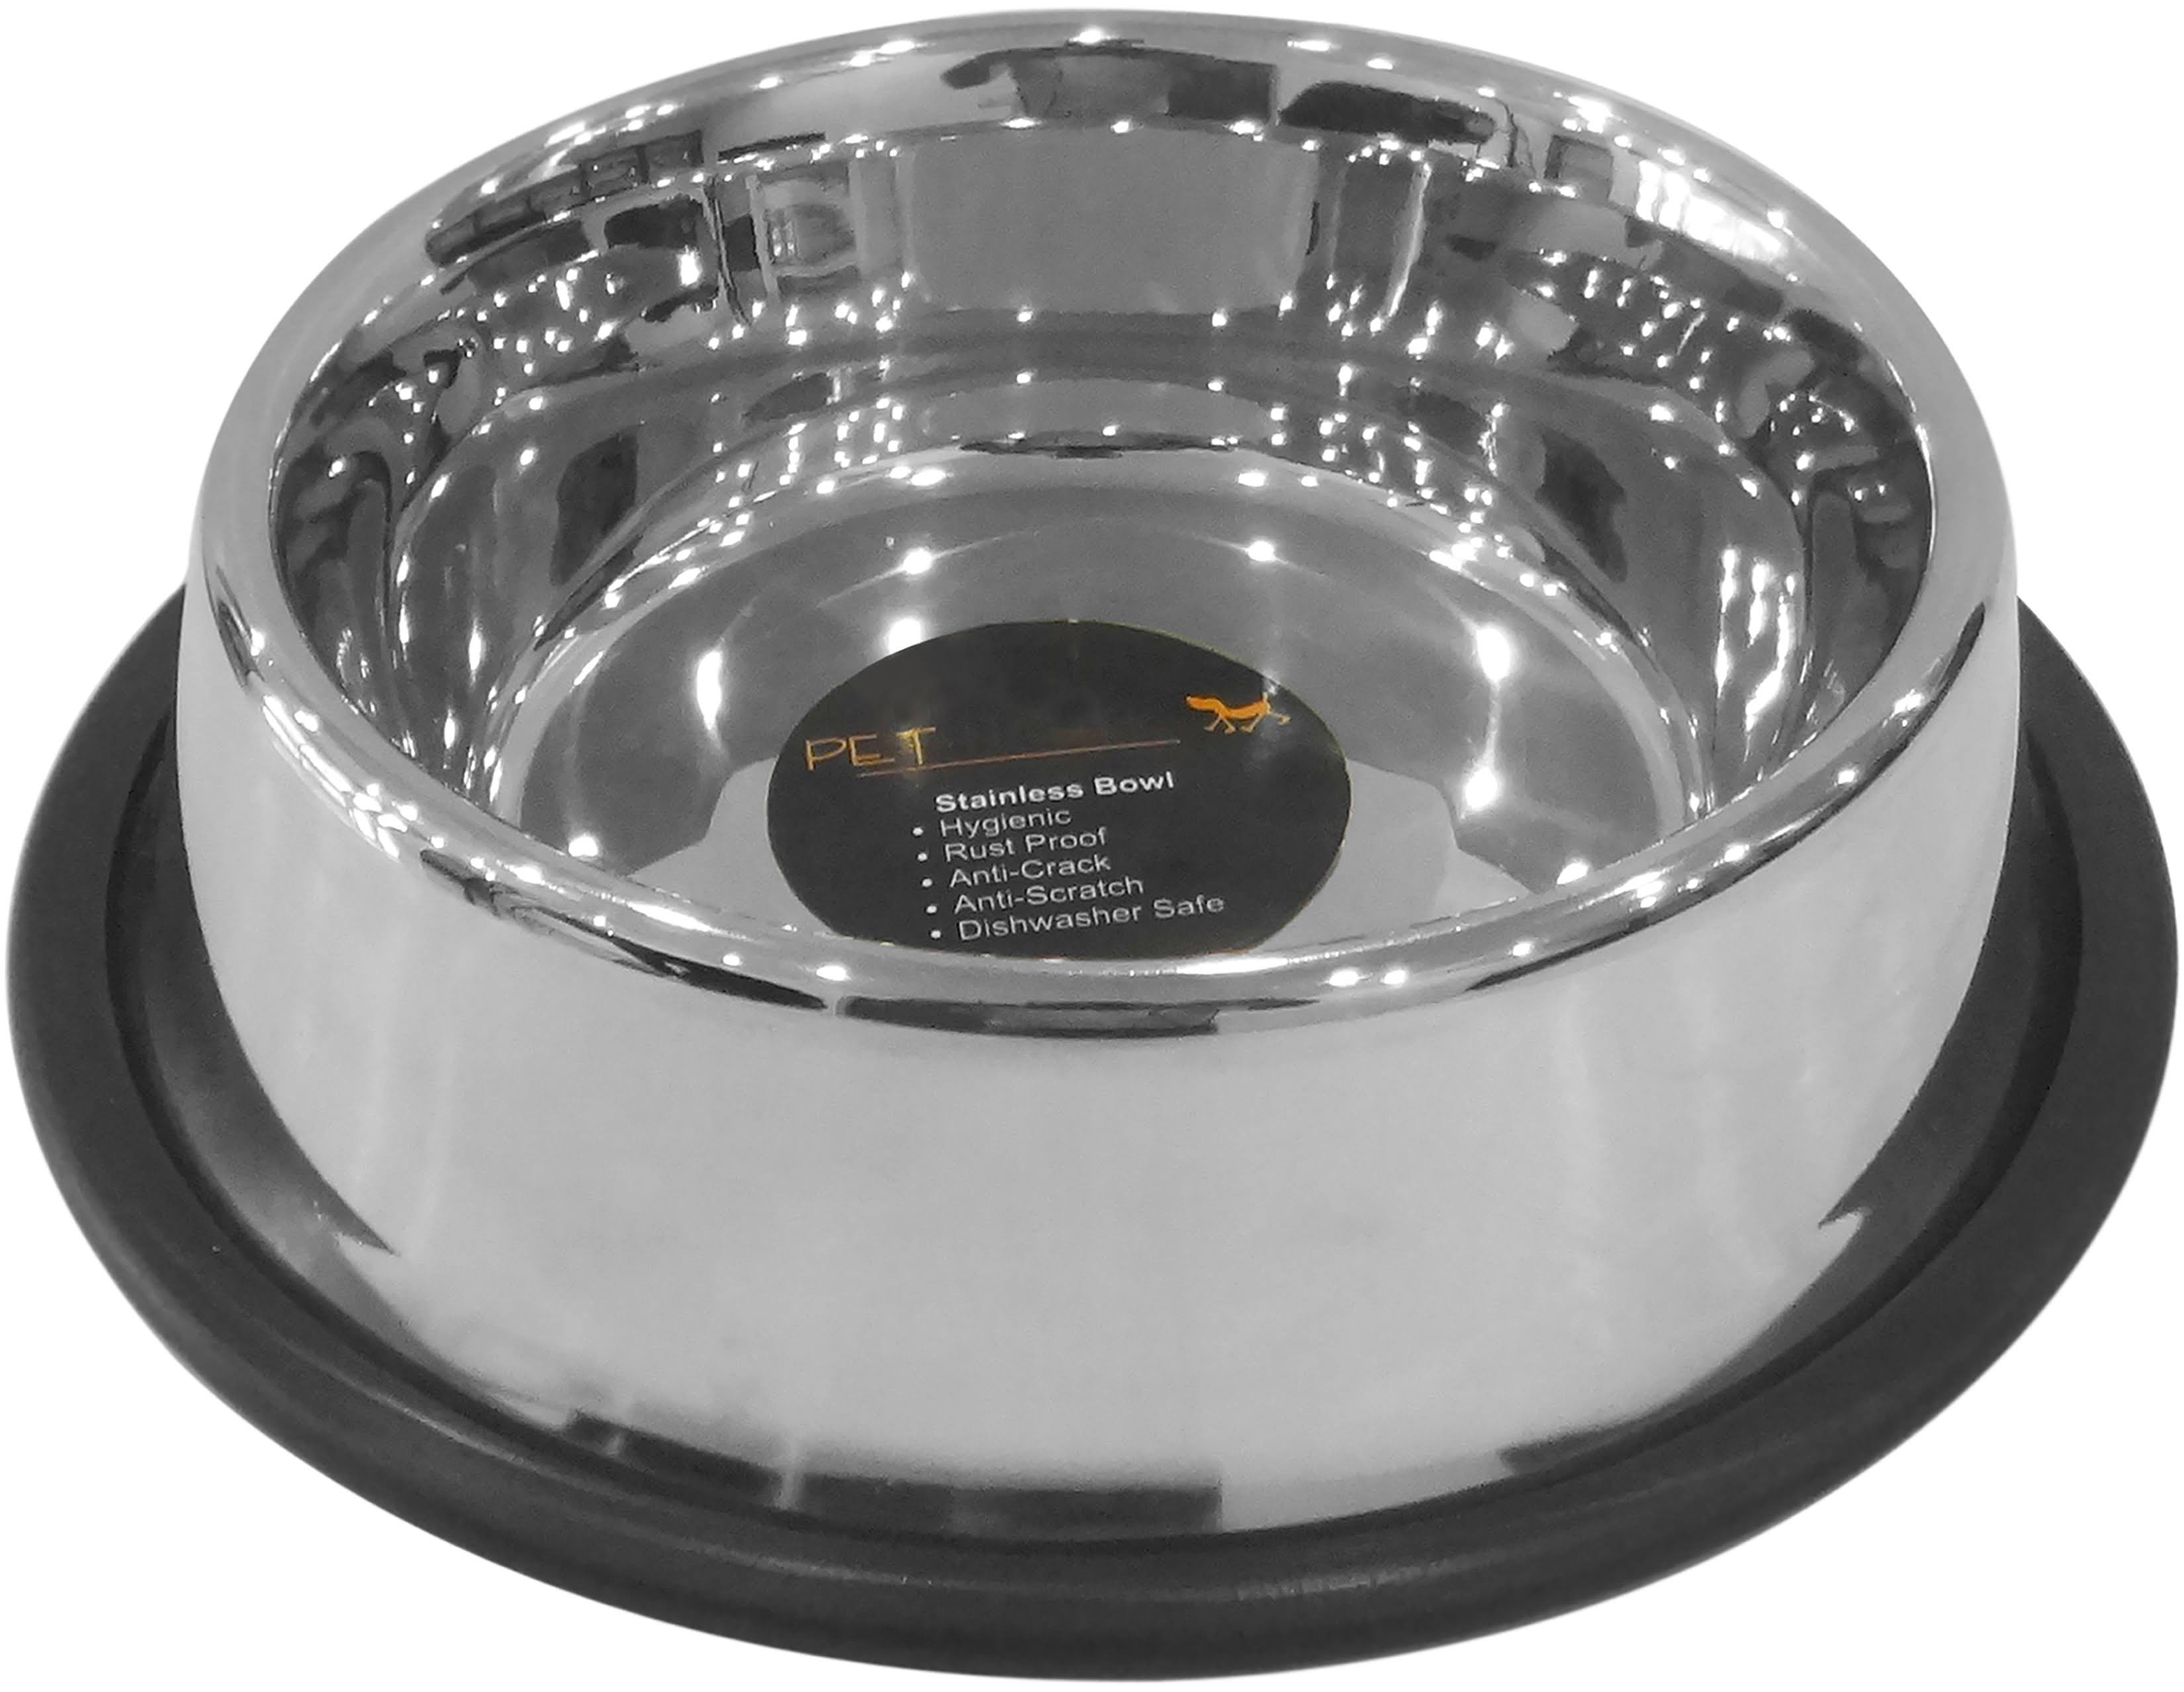 Pet Nautic Non-Skid Non-Tip Bowl 64oz-Stainless Steel